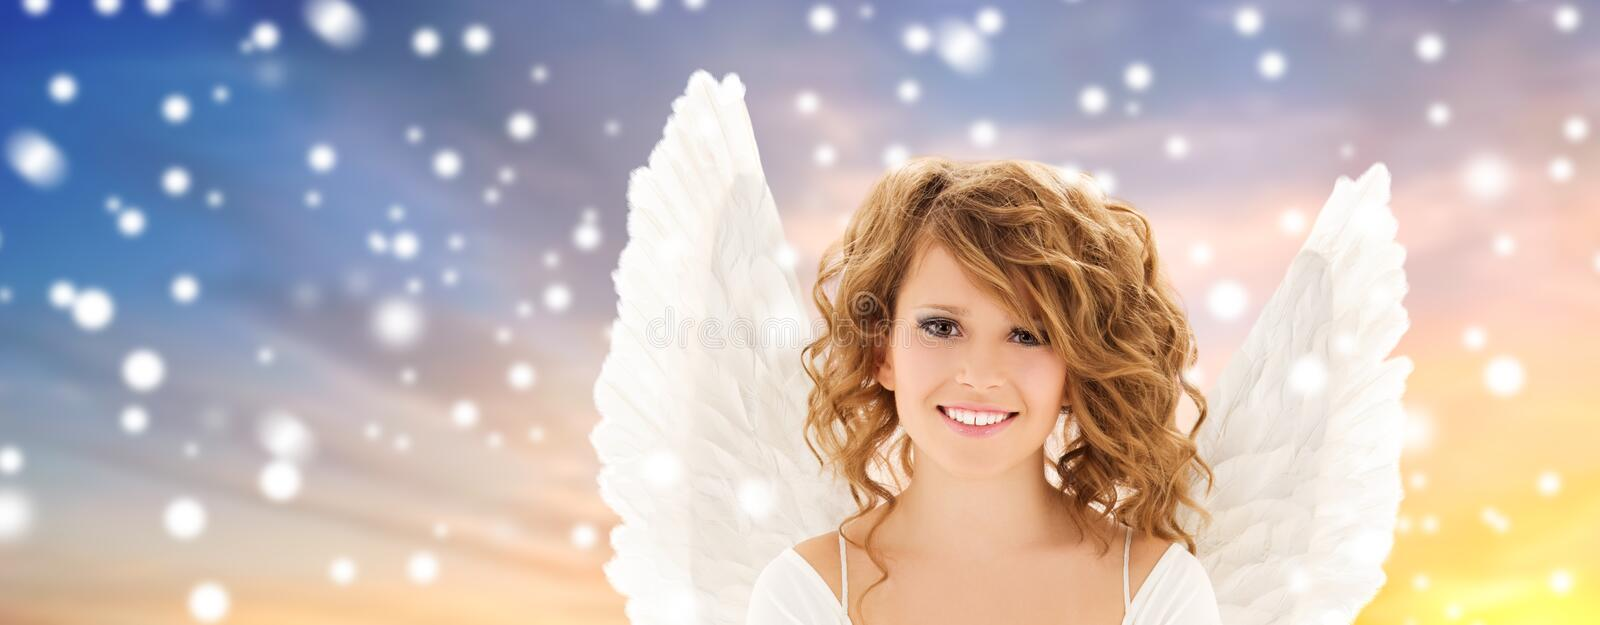 Teenage girl with angel wings over snow royalty free stock photo